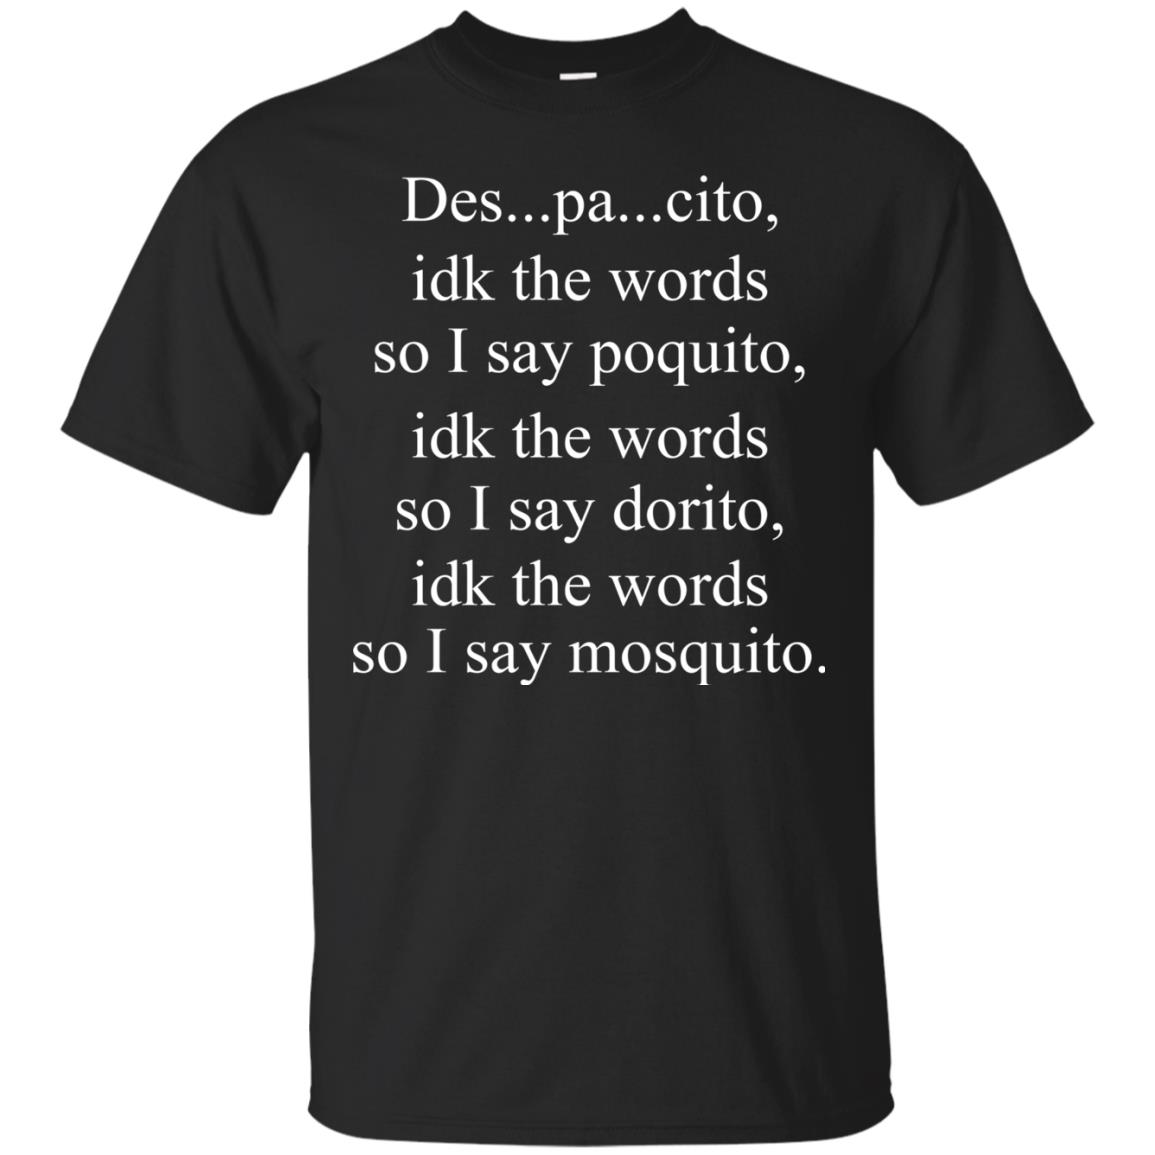 despacito shirt